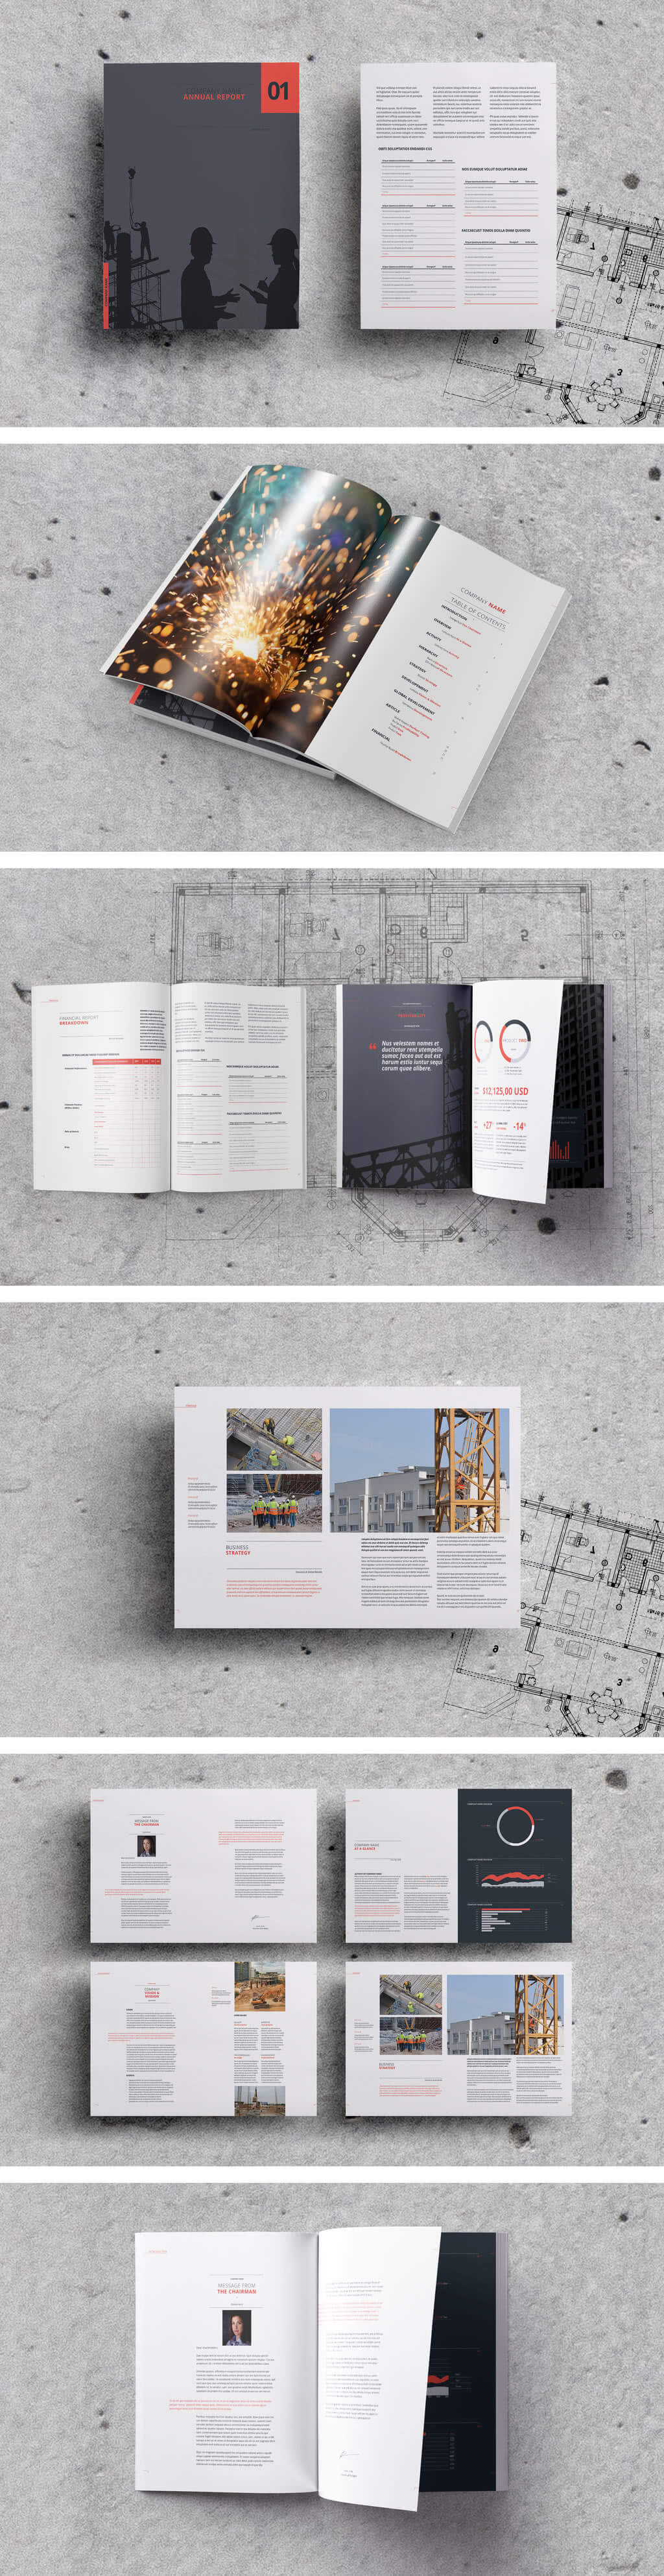 75 Fresh Indesign Templates And Where To Find More in Free Indesign Report Templates